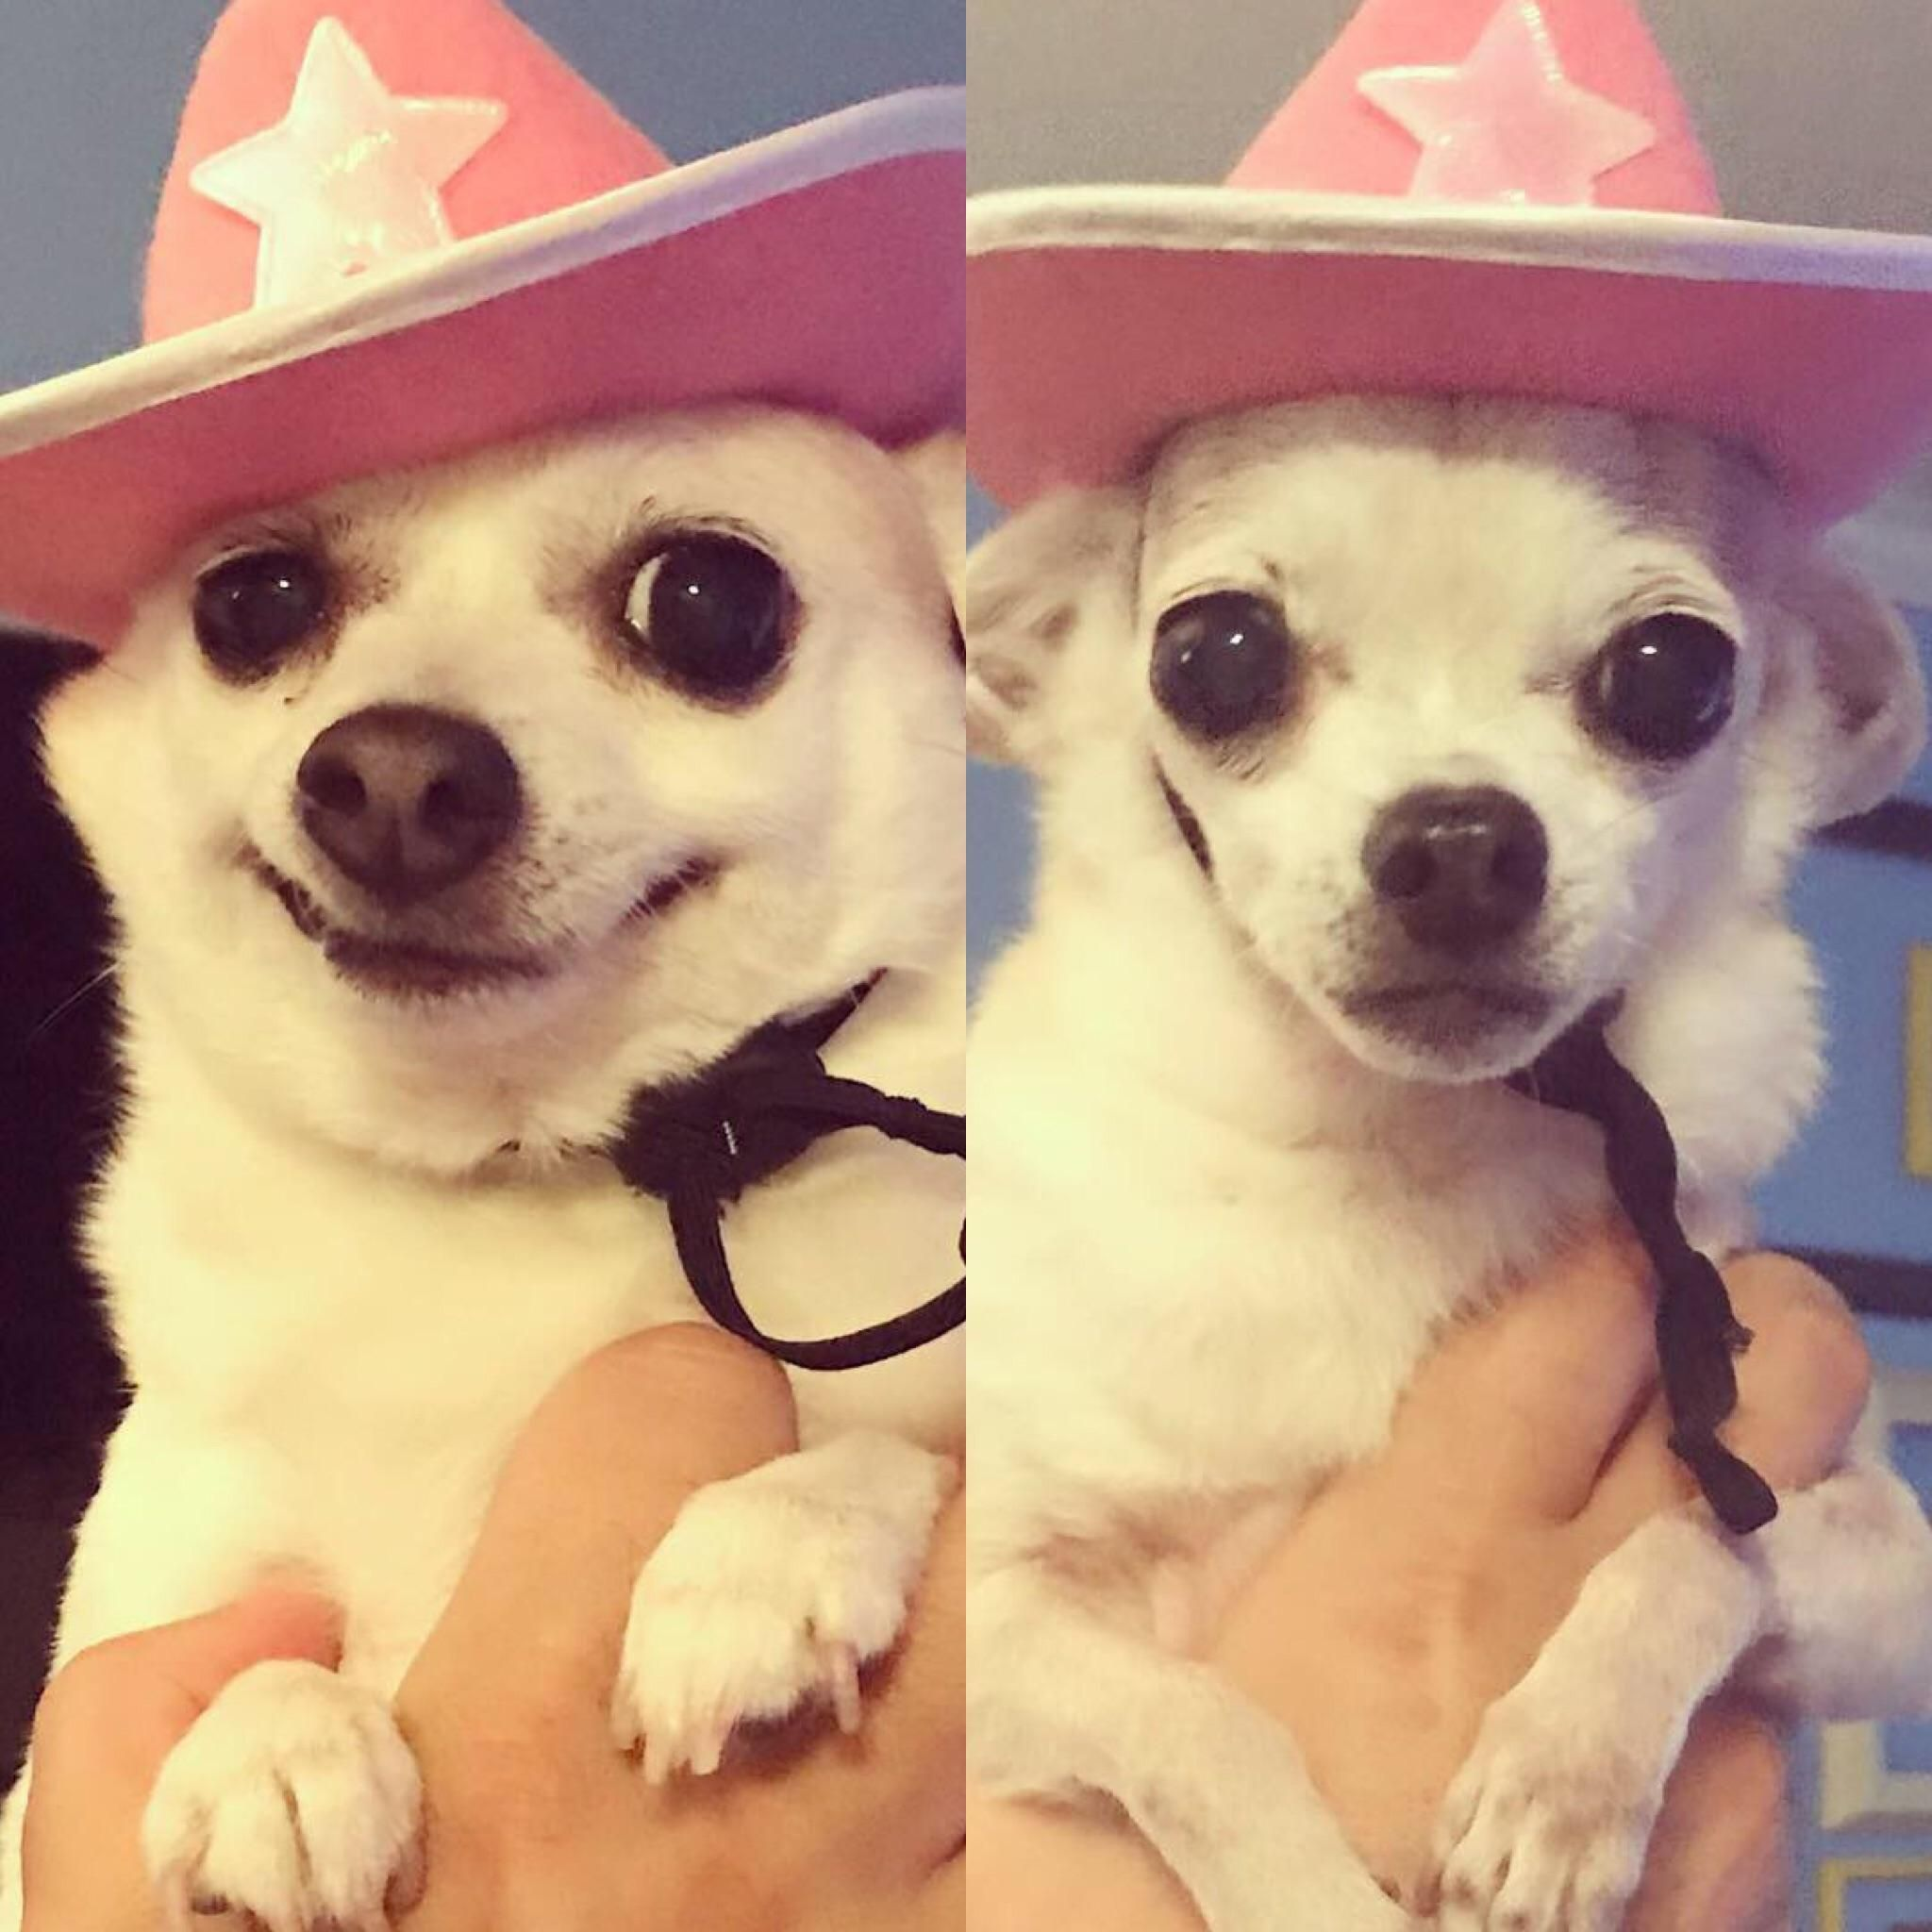 They Also Make Cowboy Hats For Dogs Chihuahua Cowboy Hats Dog Hat Chihuahua Puppies